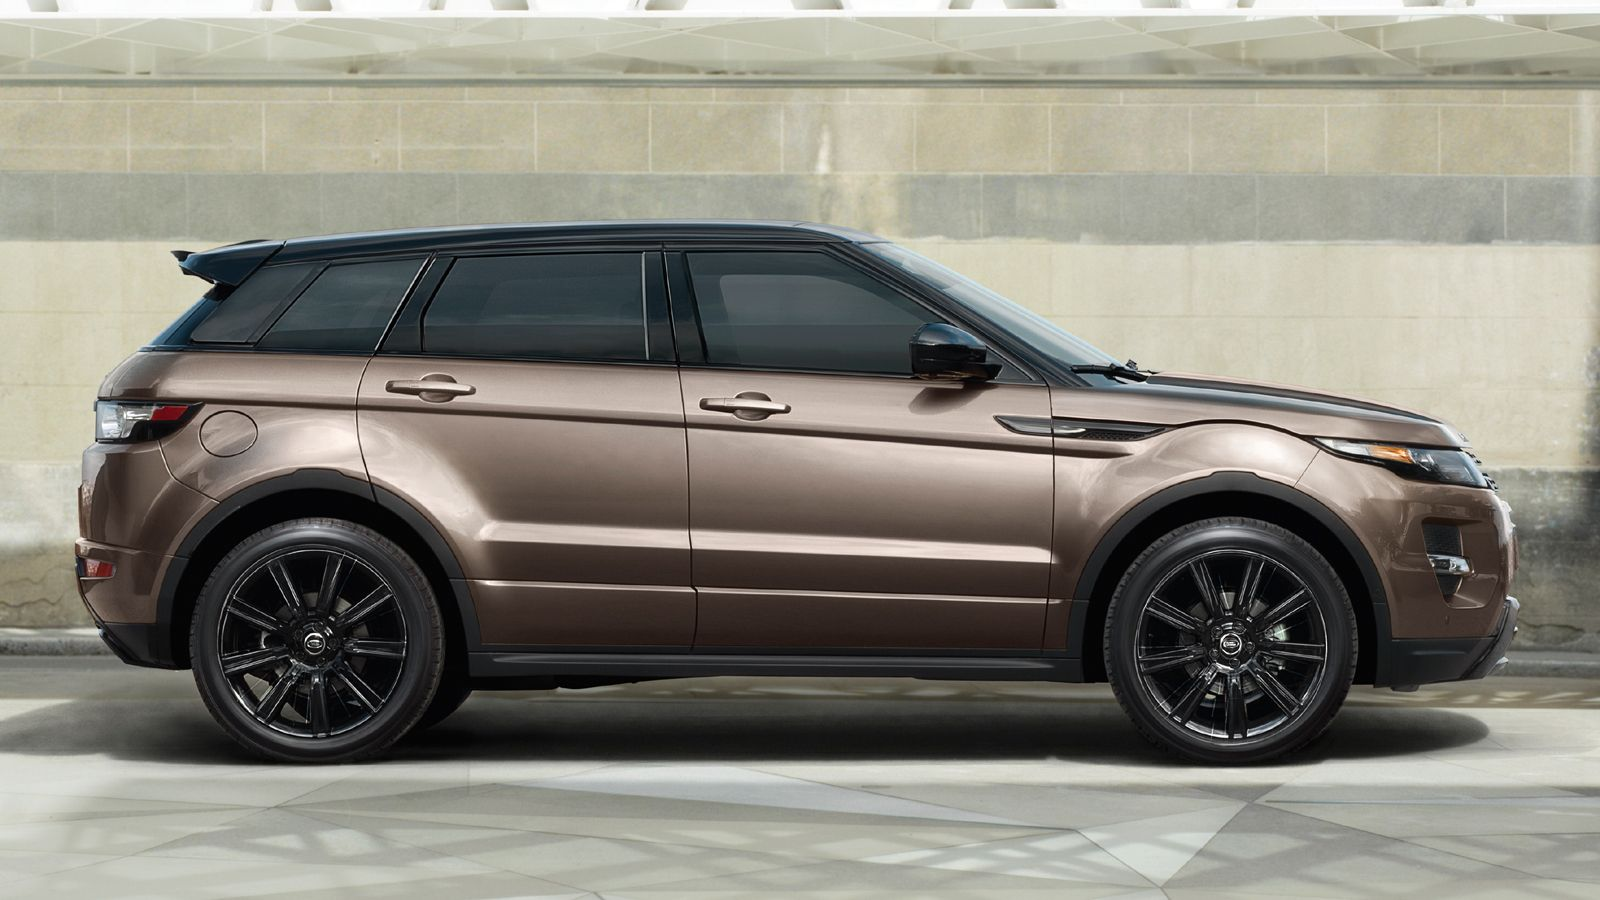 2015 range rover evoque this will be my next vehicle